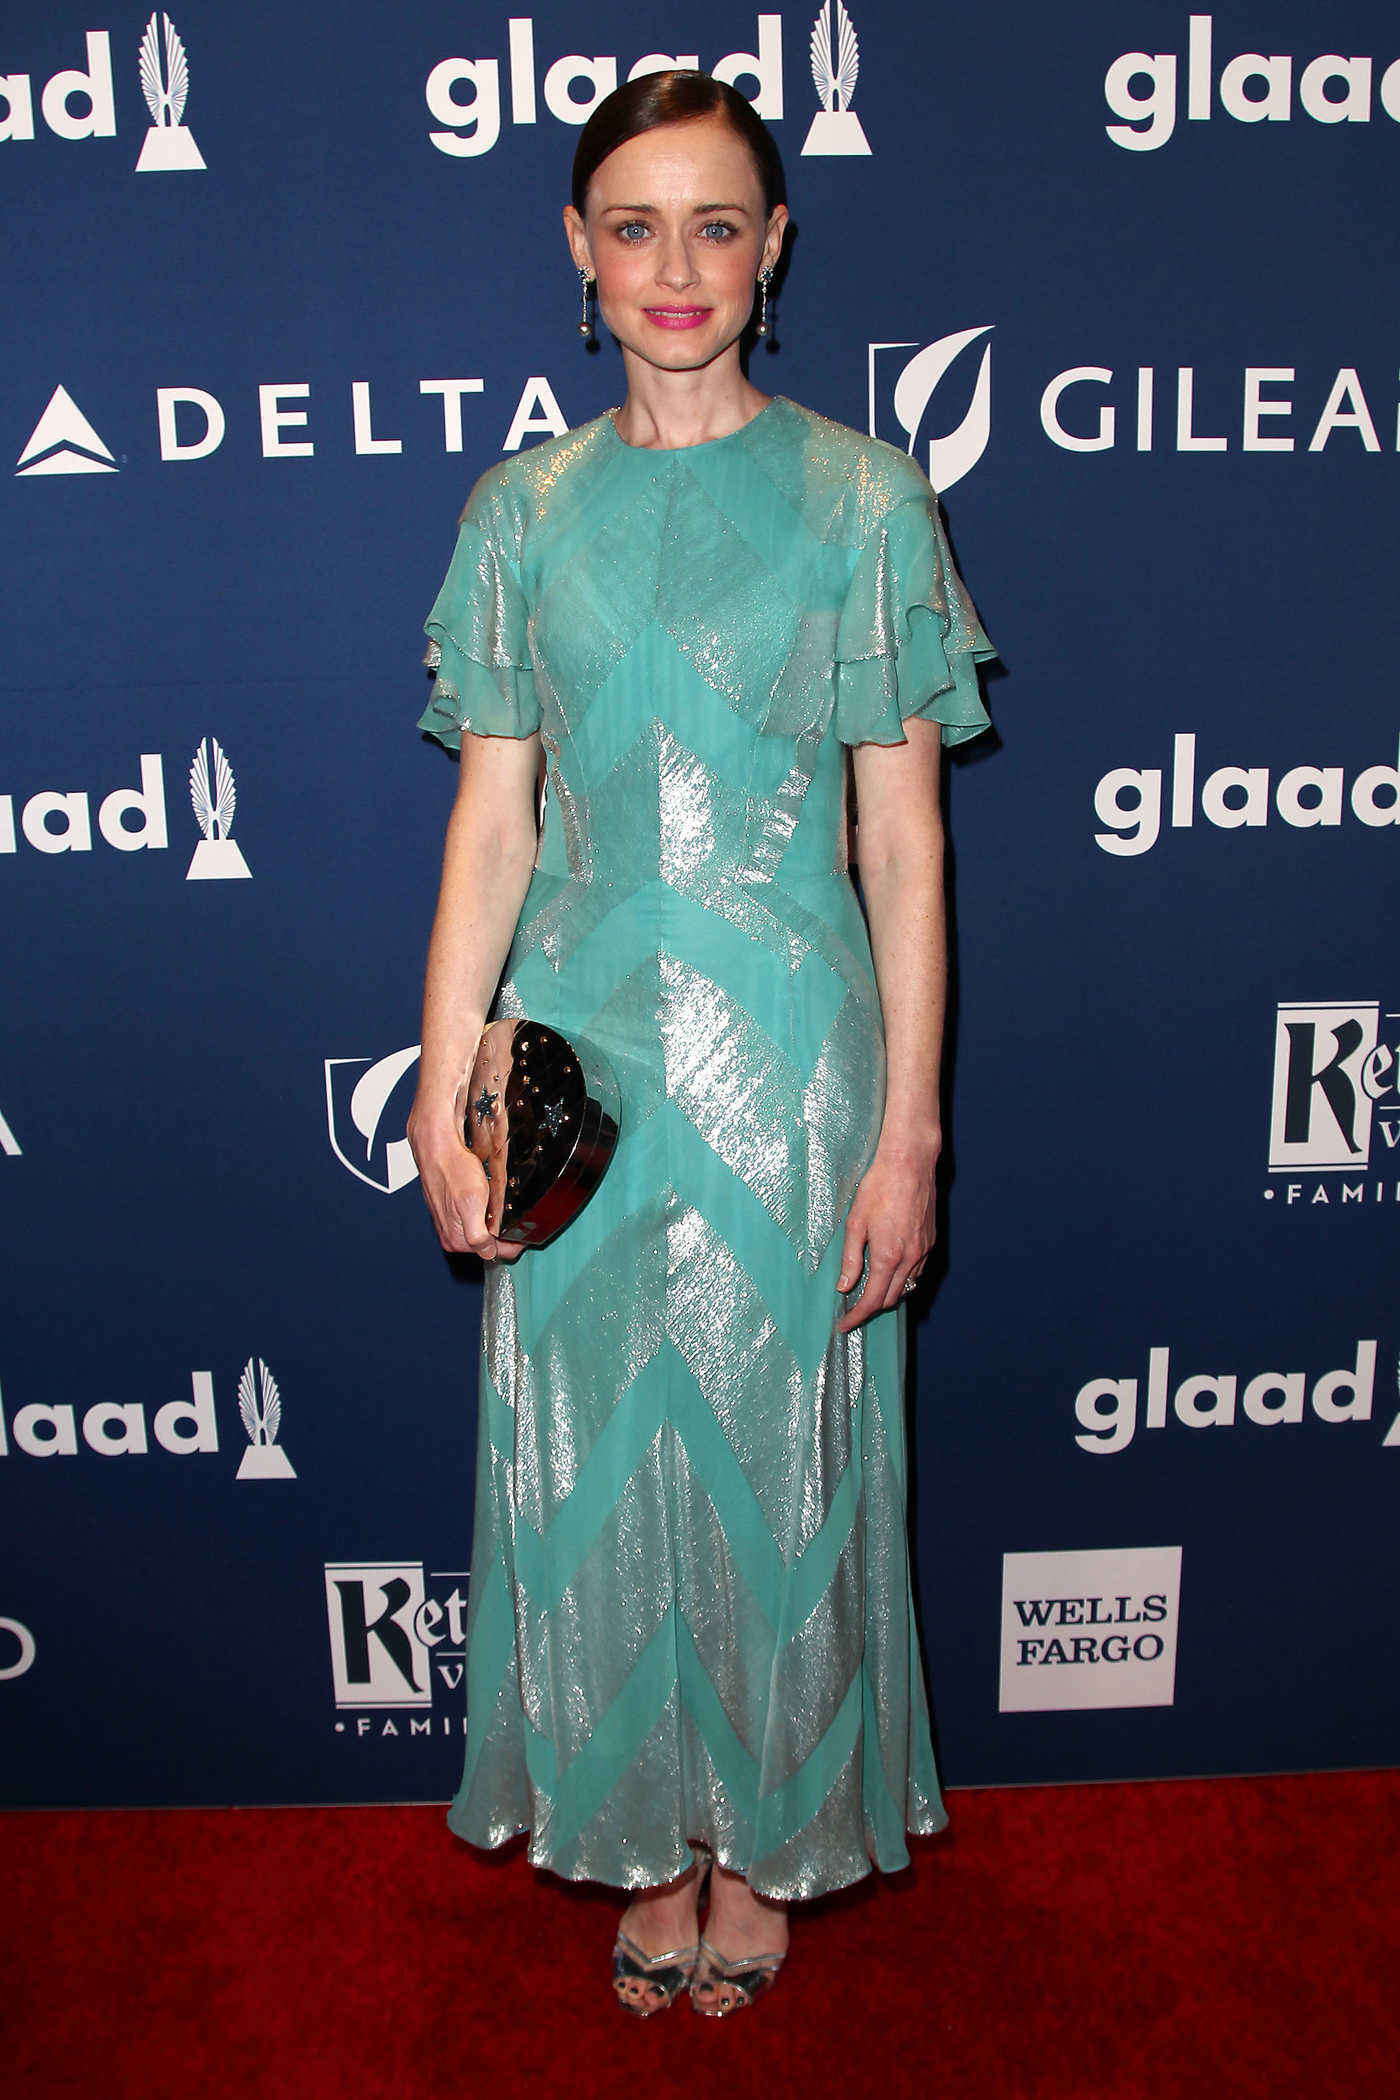 Alexis Bledel at the 29th Annual GLAAD Media Awards in New York City 05/05/2018